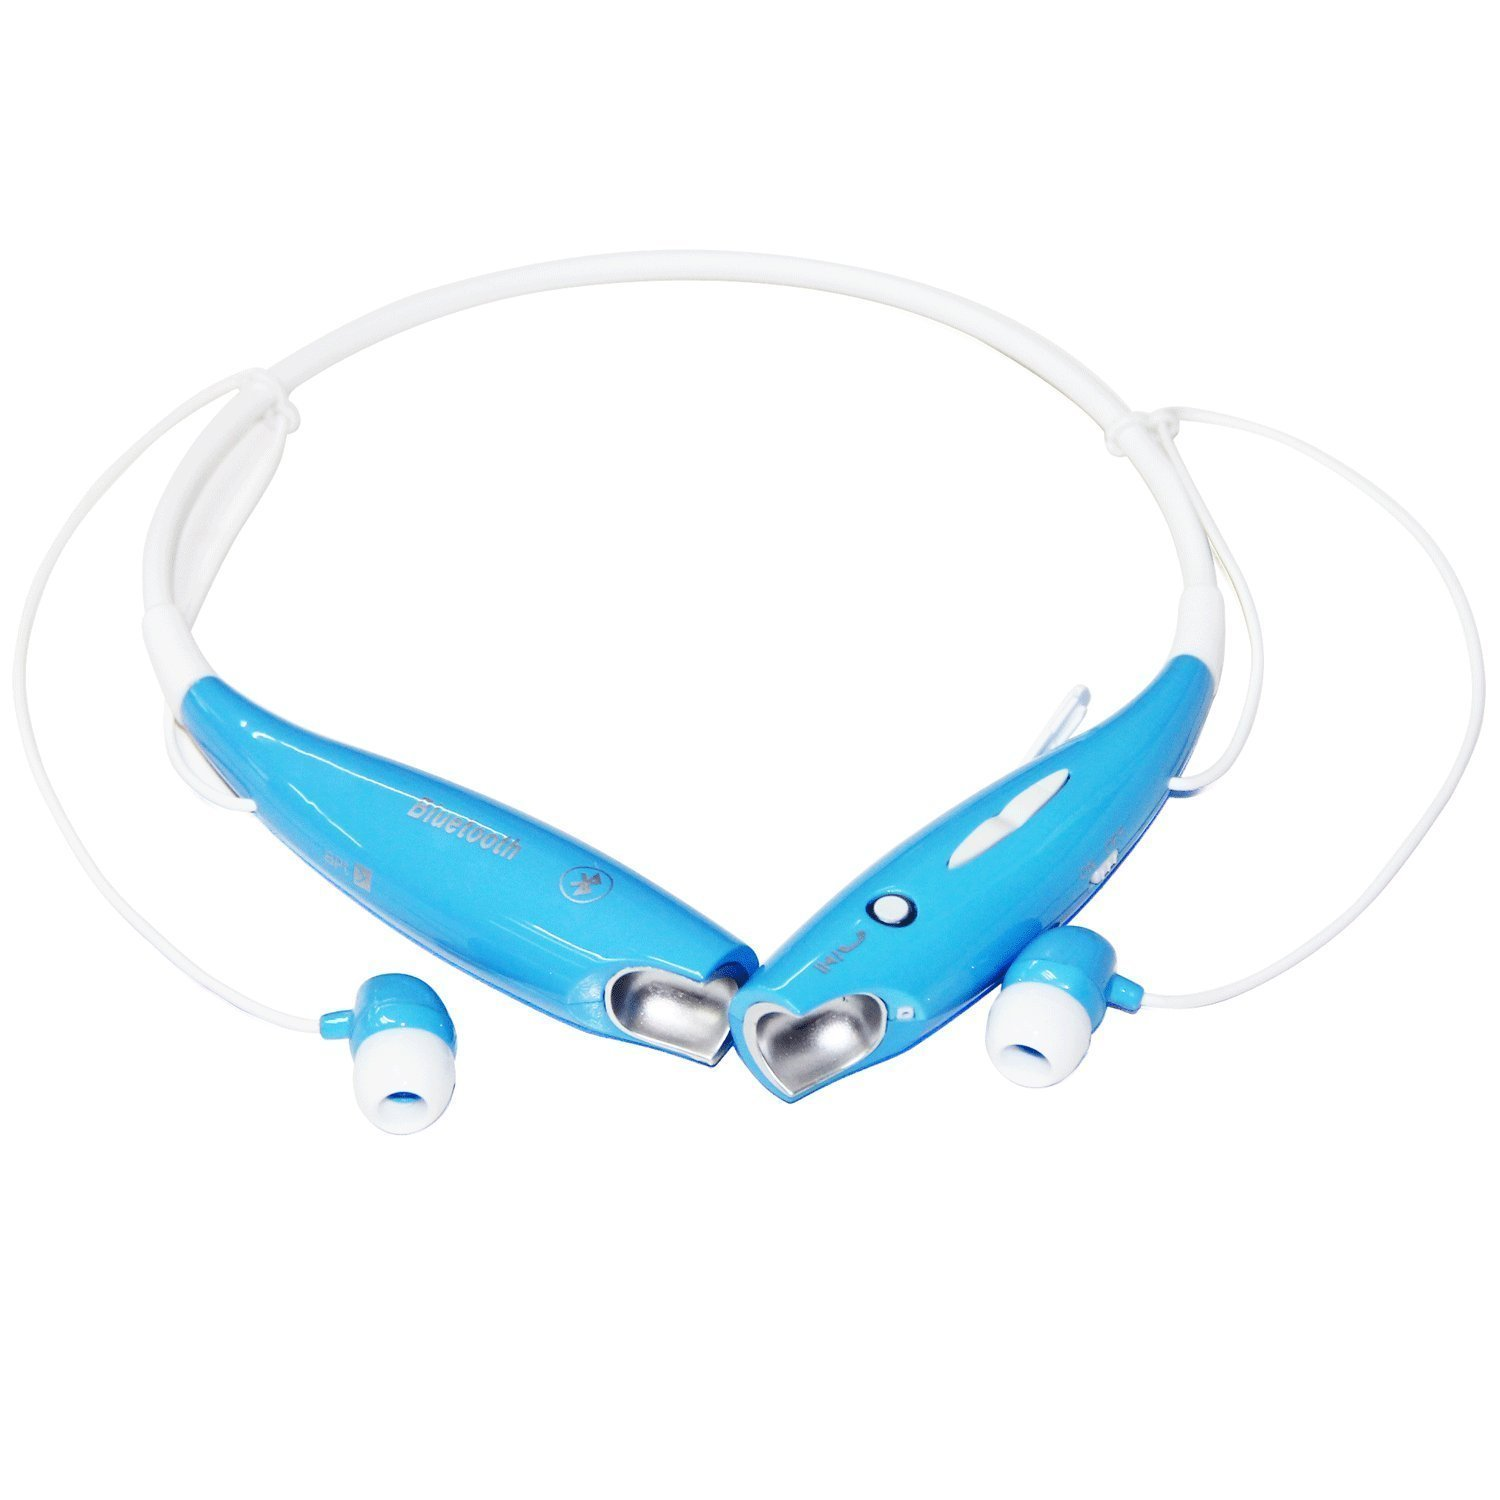 3b99f81caf5 Universal Neckband Style Bluetooth Stereo Headset Earphone Headphone with  Vibration HV-800